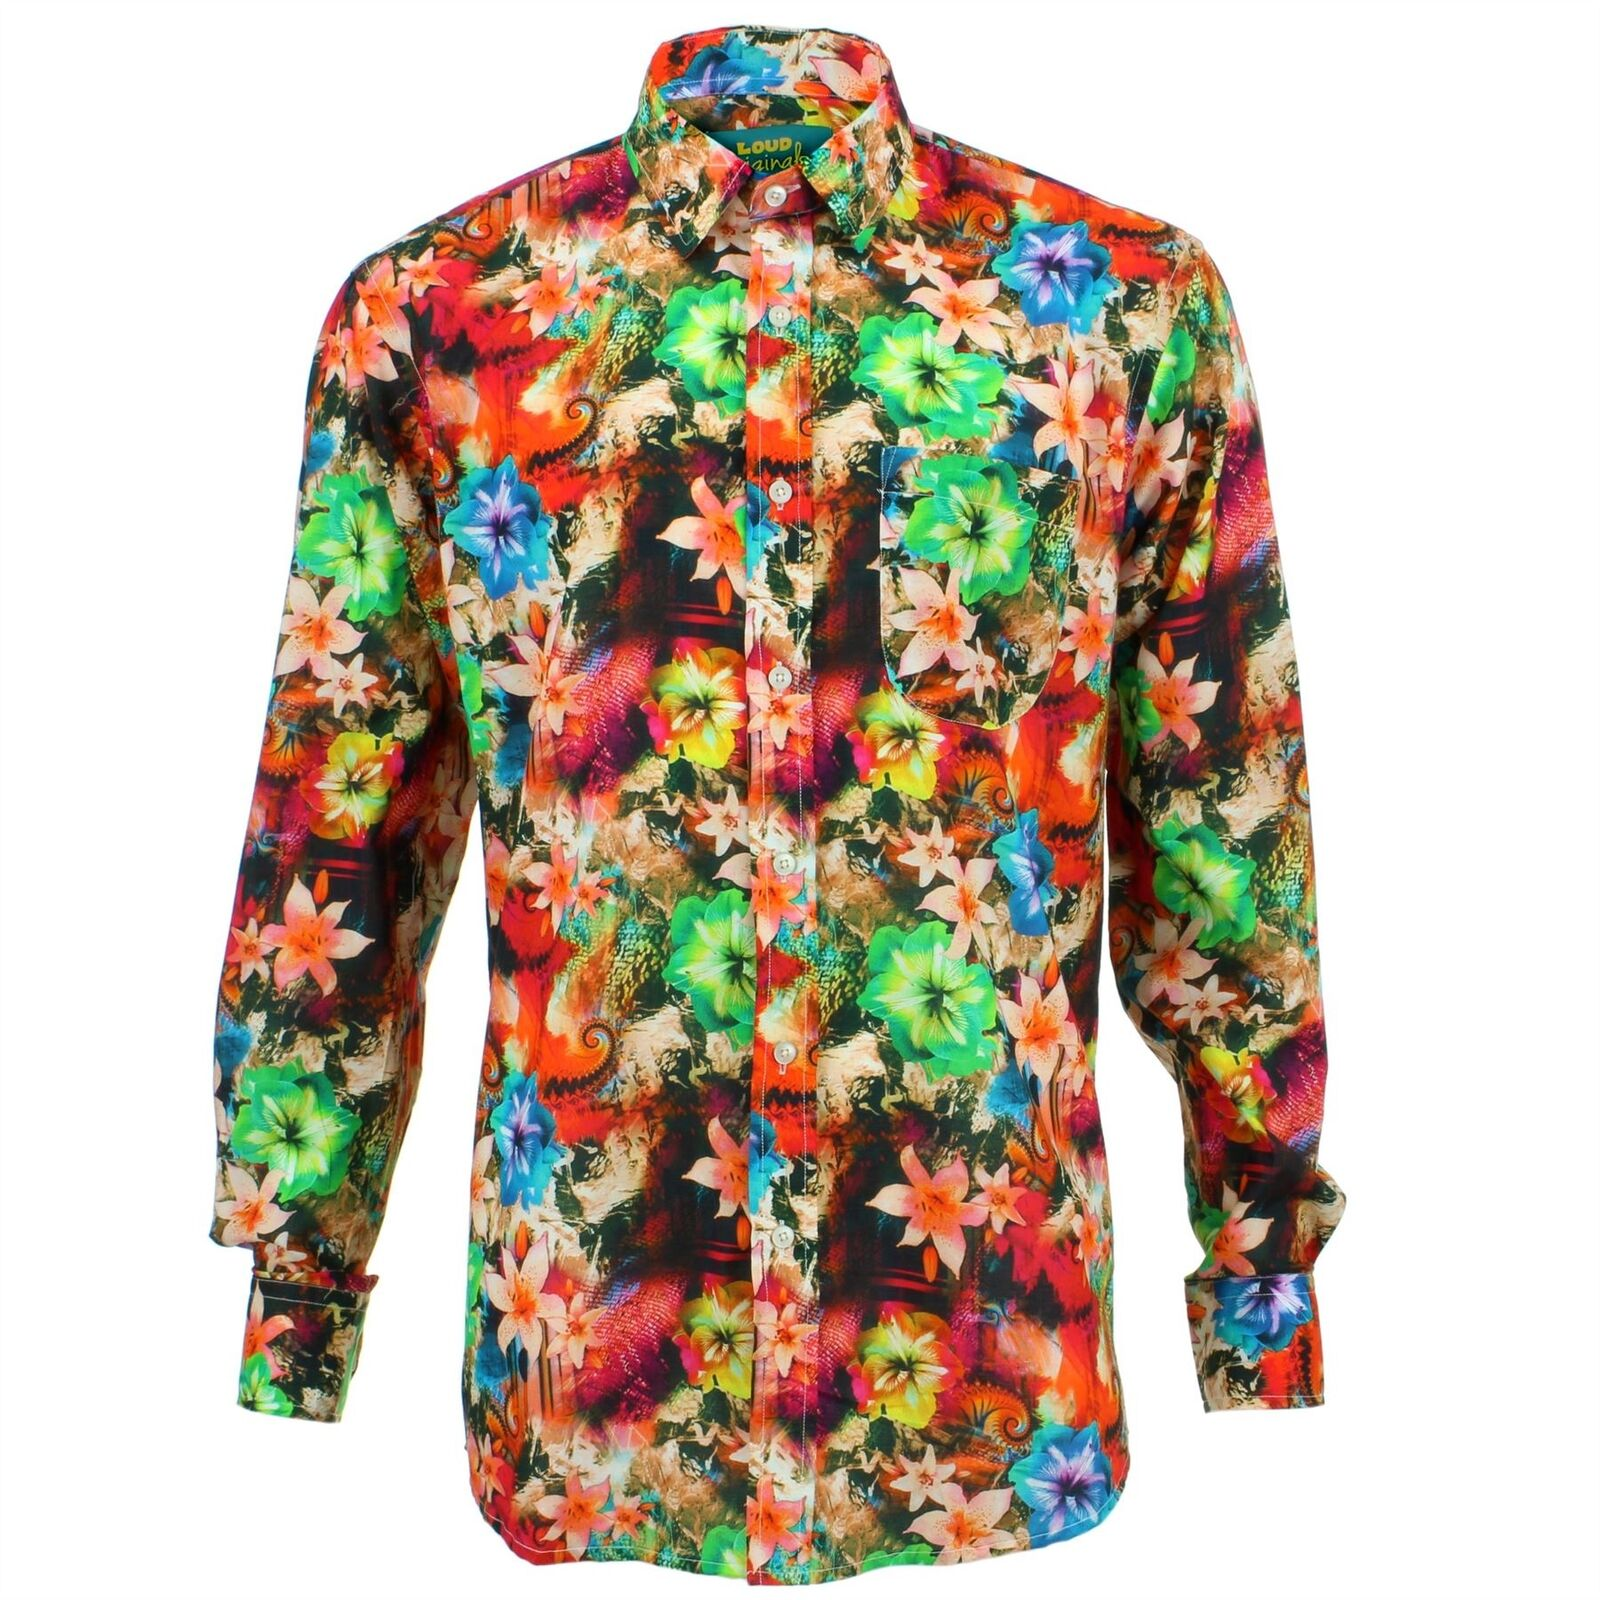 Men's Loud Shirt REGULAR FIT Floral Red Retro Psychedelic Fancy